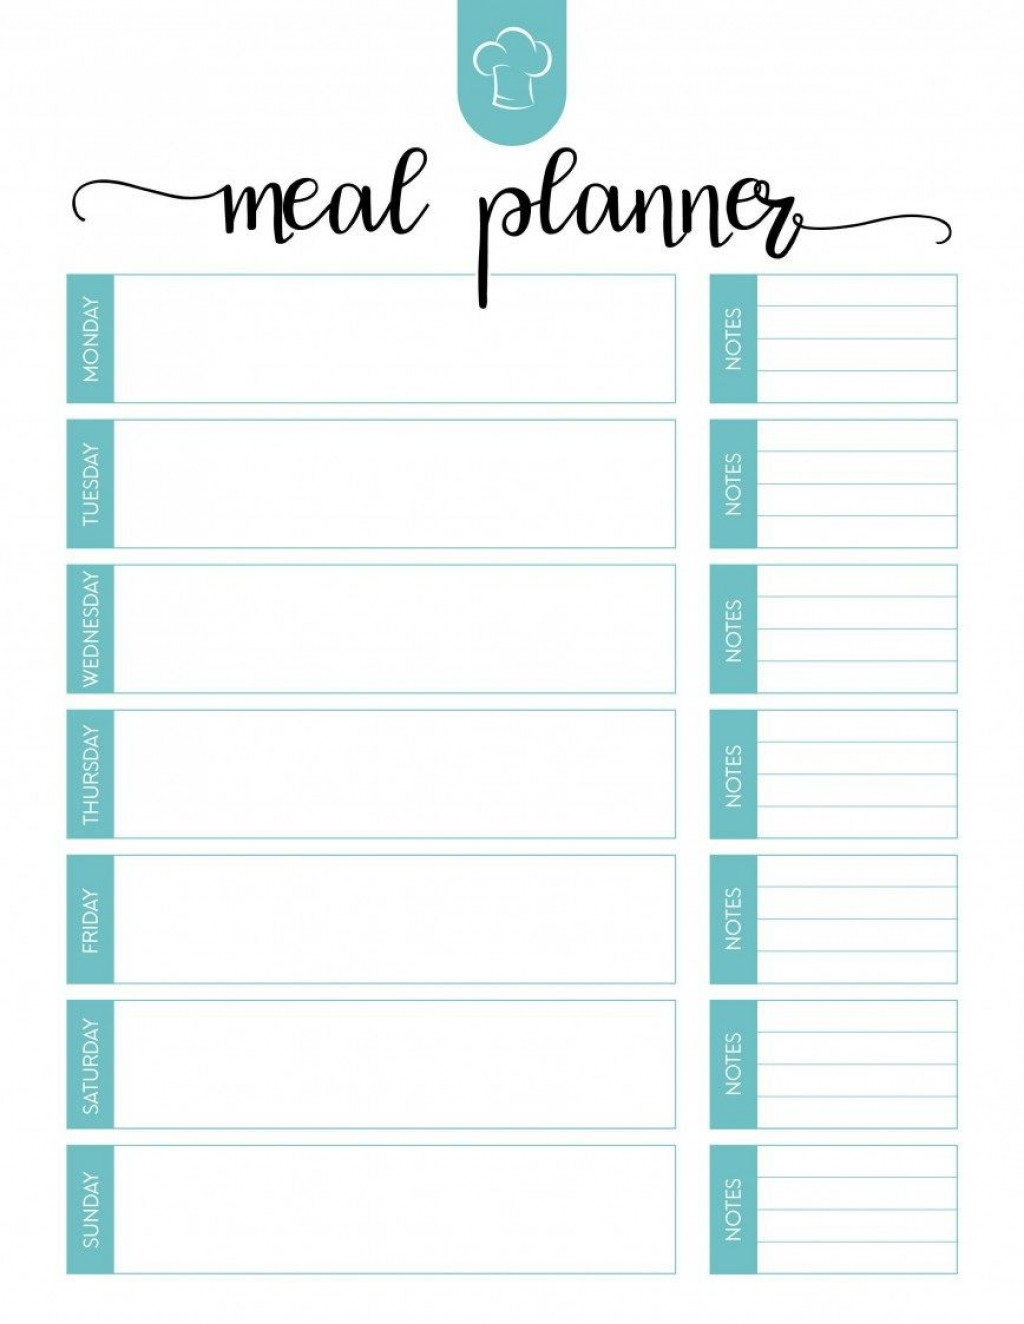 006 Formidable Free Meal Planner Template Word Highest Quality  Editable Weekly MonthlyLarge